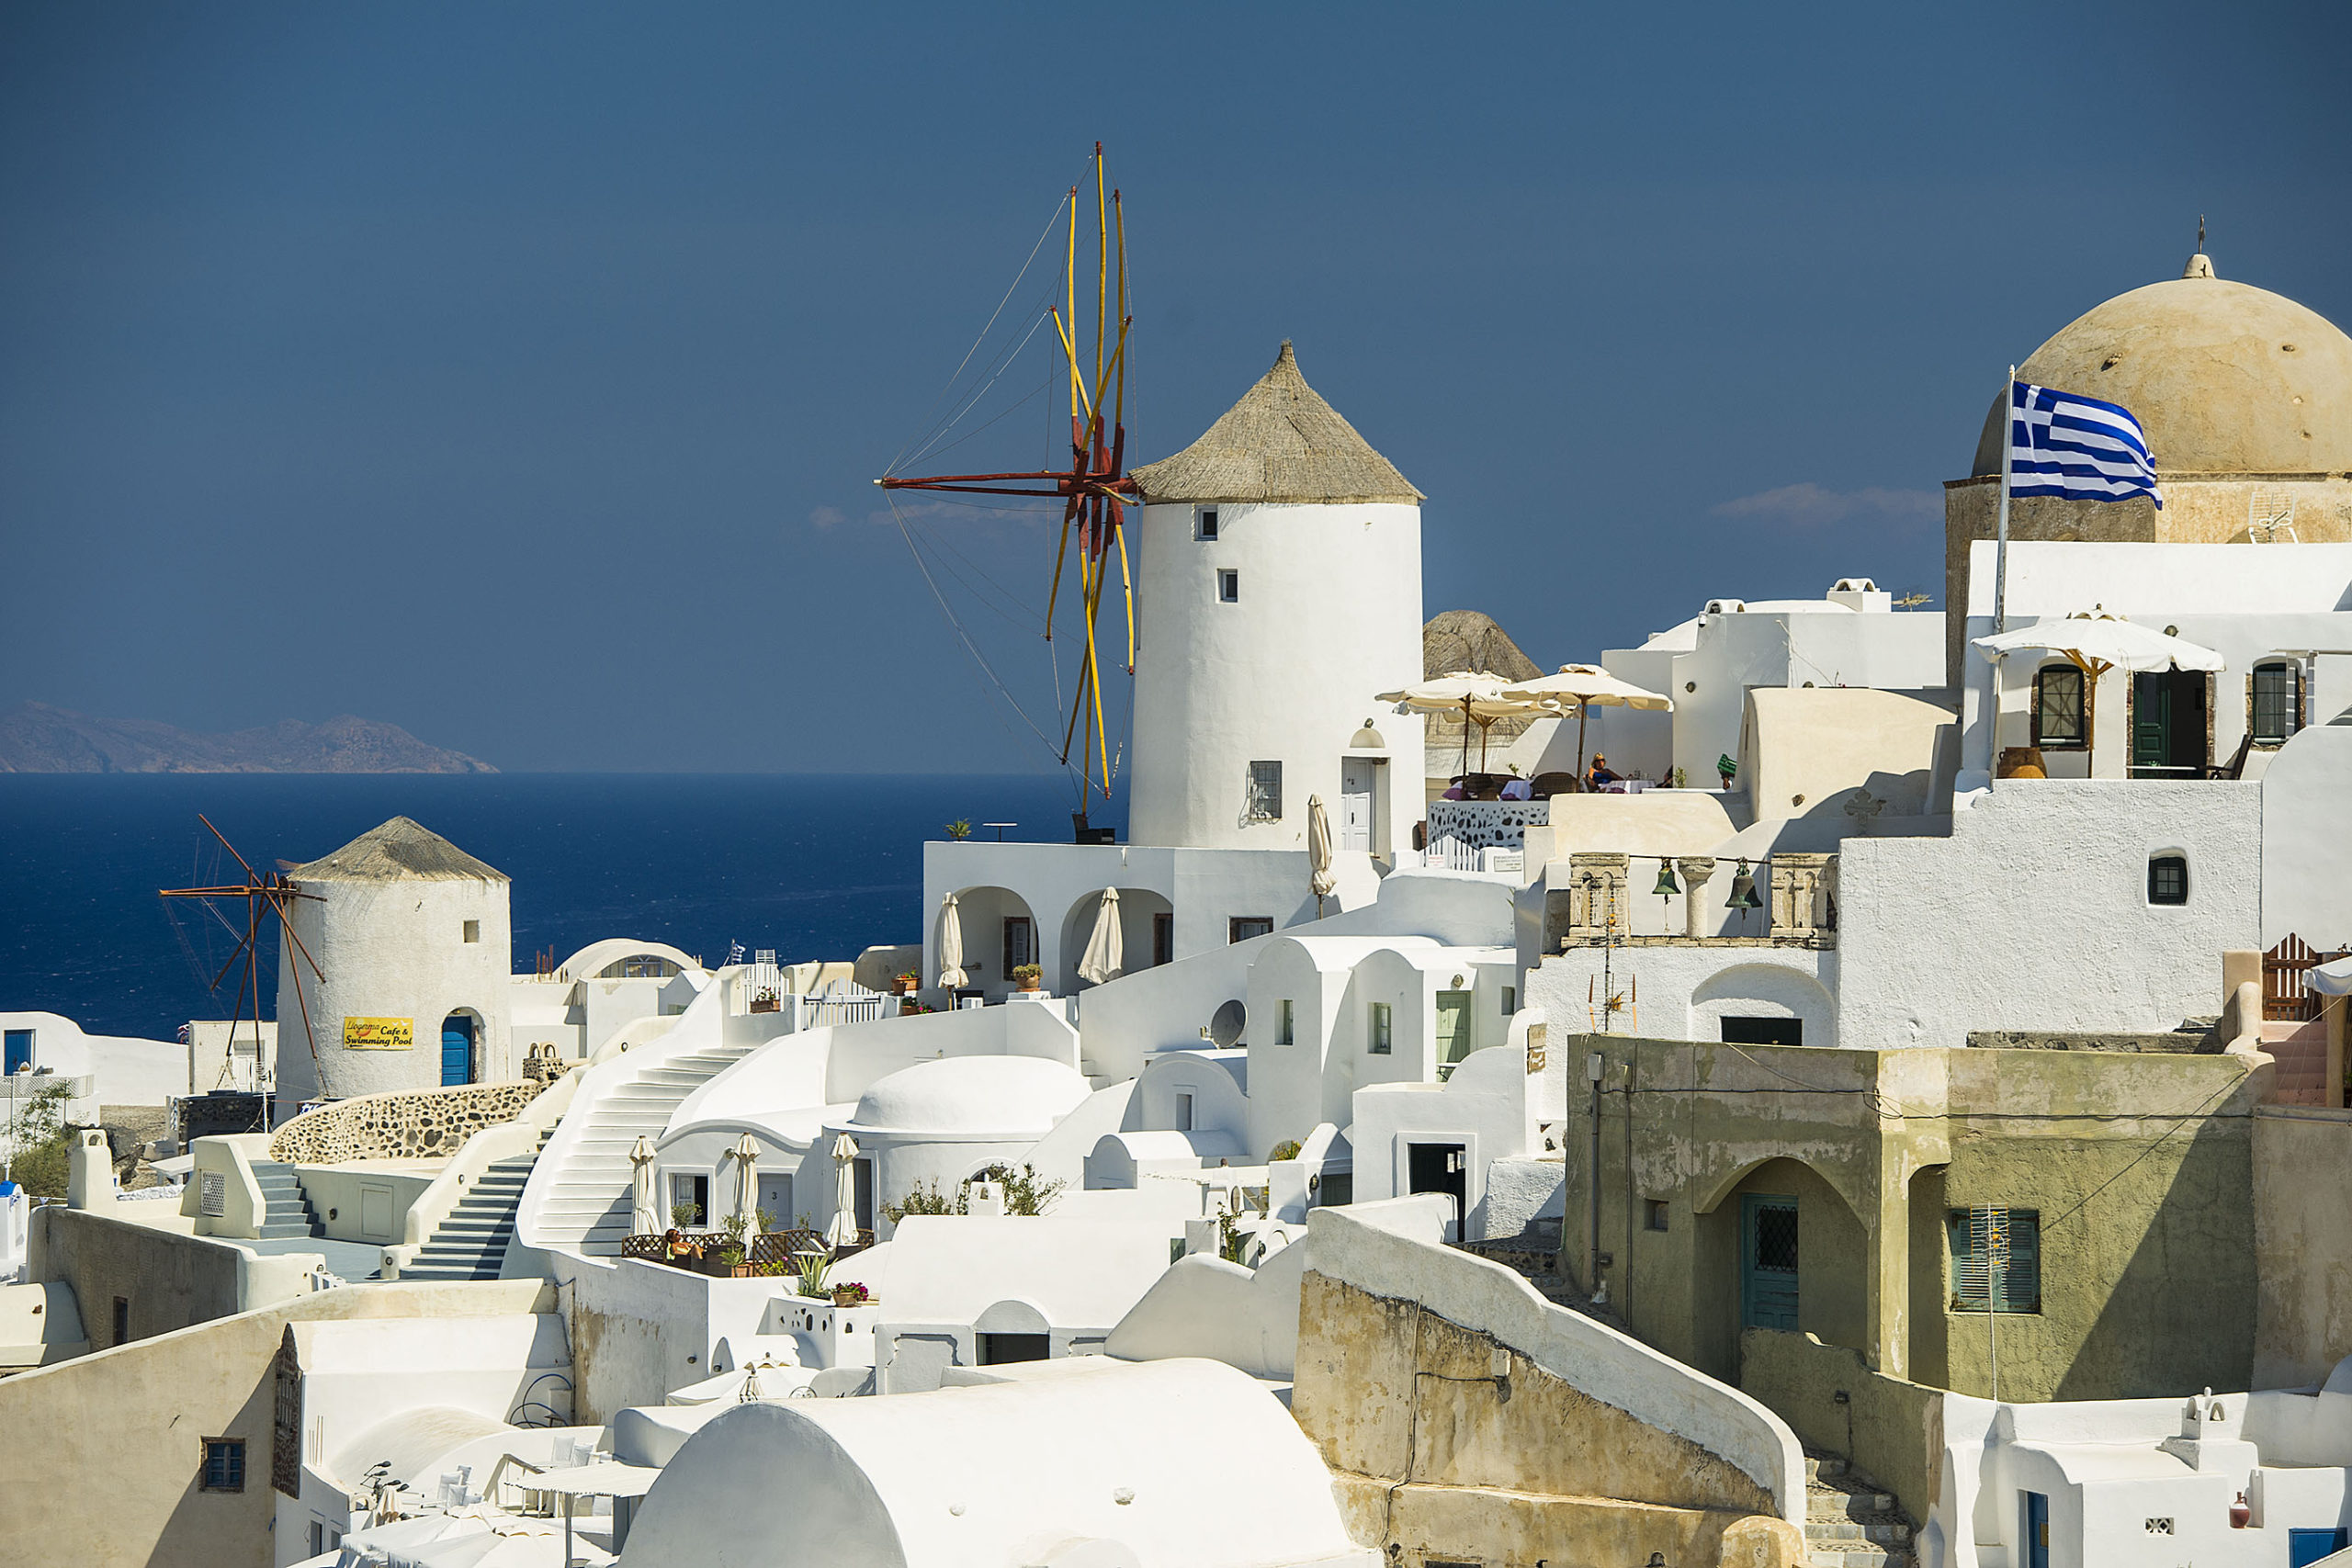 Disney Cruise Line will return to the awe-inspiring beauty of Greece in summer 2021, as a part of the Disney Magic's grand tour of Europe. While visiting the Greek Isles, guests can marvel at the stunning landscapes and archeological wonders of the region, like Santorini with its iconic whitewashed cliffside dwellings. (Matt Stroshane, photographer)